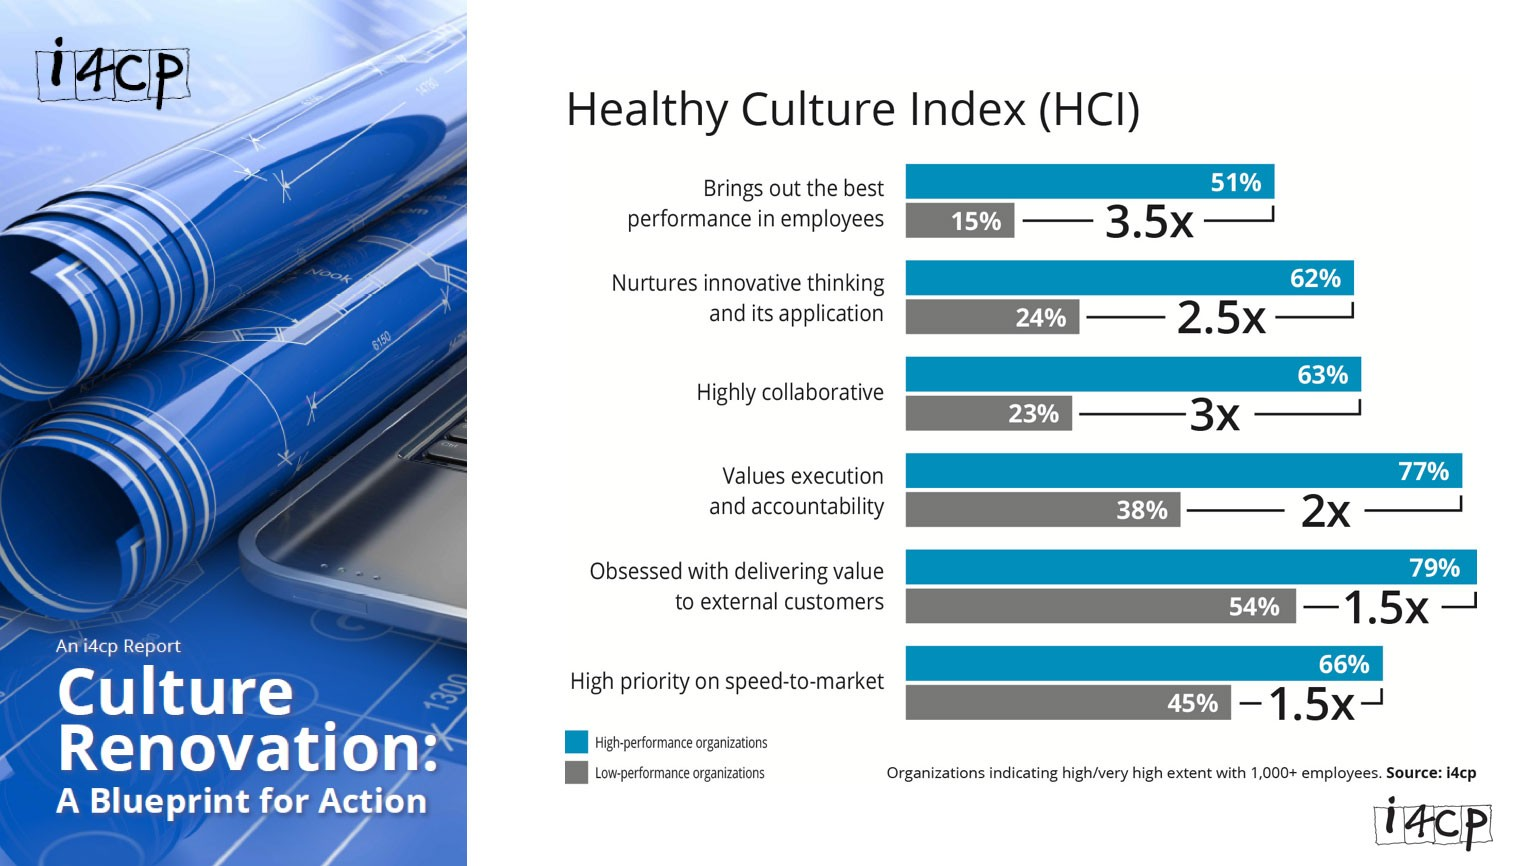 Screenshot of bar graph from i4cp report:  Title: Healthy Culture Index (HCI)  Brings out the best performance in employees: 51% high-performance organizations 15% low-performance organizations 3.5X difference  Nurtures innovative thinking and its application: 62% high-performance organizations 24% low-performance organizations 2.5X difference  Highly collaborative: 63% high-performance organizations 23% low-performance organizations 3X difference  Values execution and accountability 77% high-performance organizations 38% low-performance organizations 2X difference  Obsessed with delivering value to external customers: 79% high-performance organizations 54% low-performance organizations 1.5X difference  High priority on speed-to-market: 66% high-performance organizations 45% low-performance organizations 1.5X difference  *Organizations indicating high/very high extent with 1000+ employees (Source: i4cp)